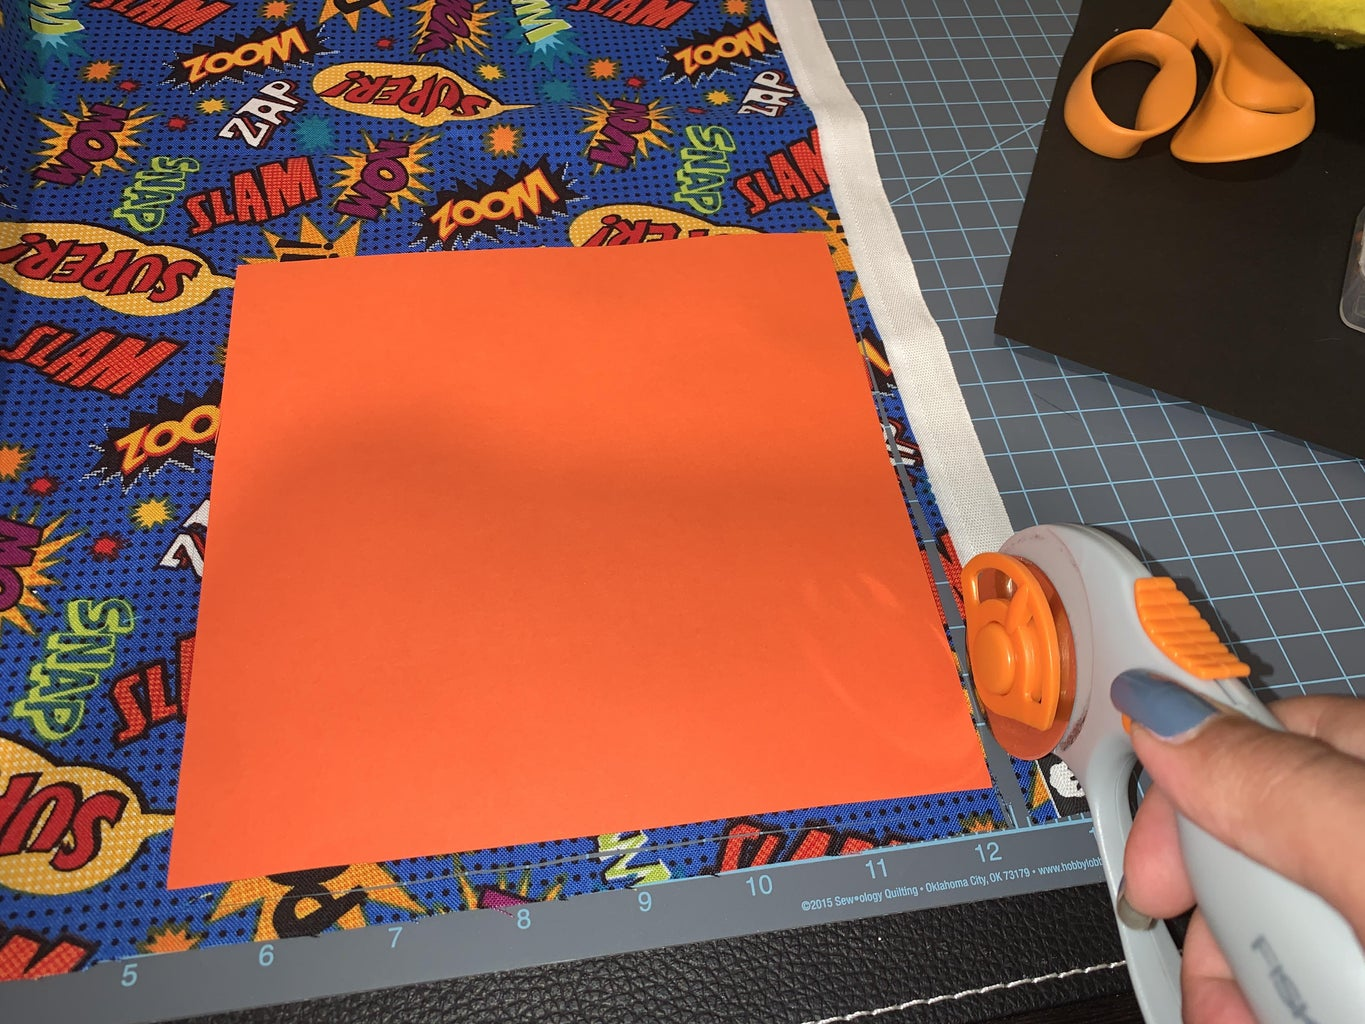 Cutting and Preparing the Fabric